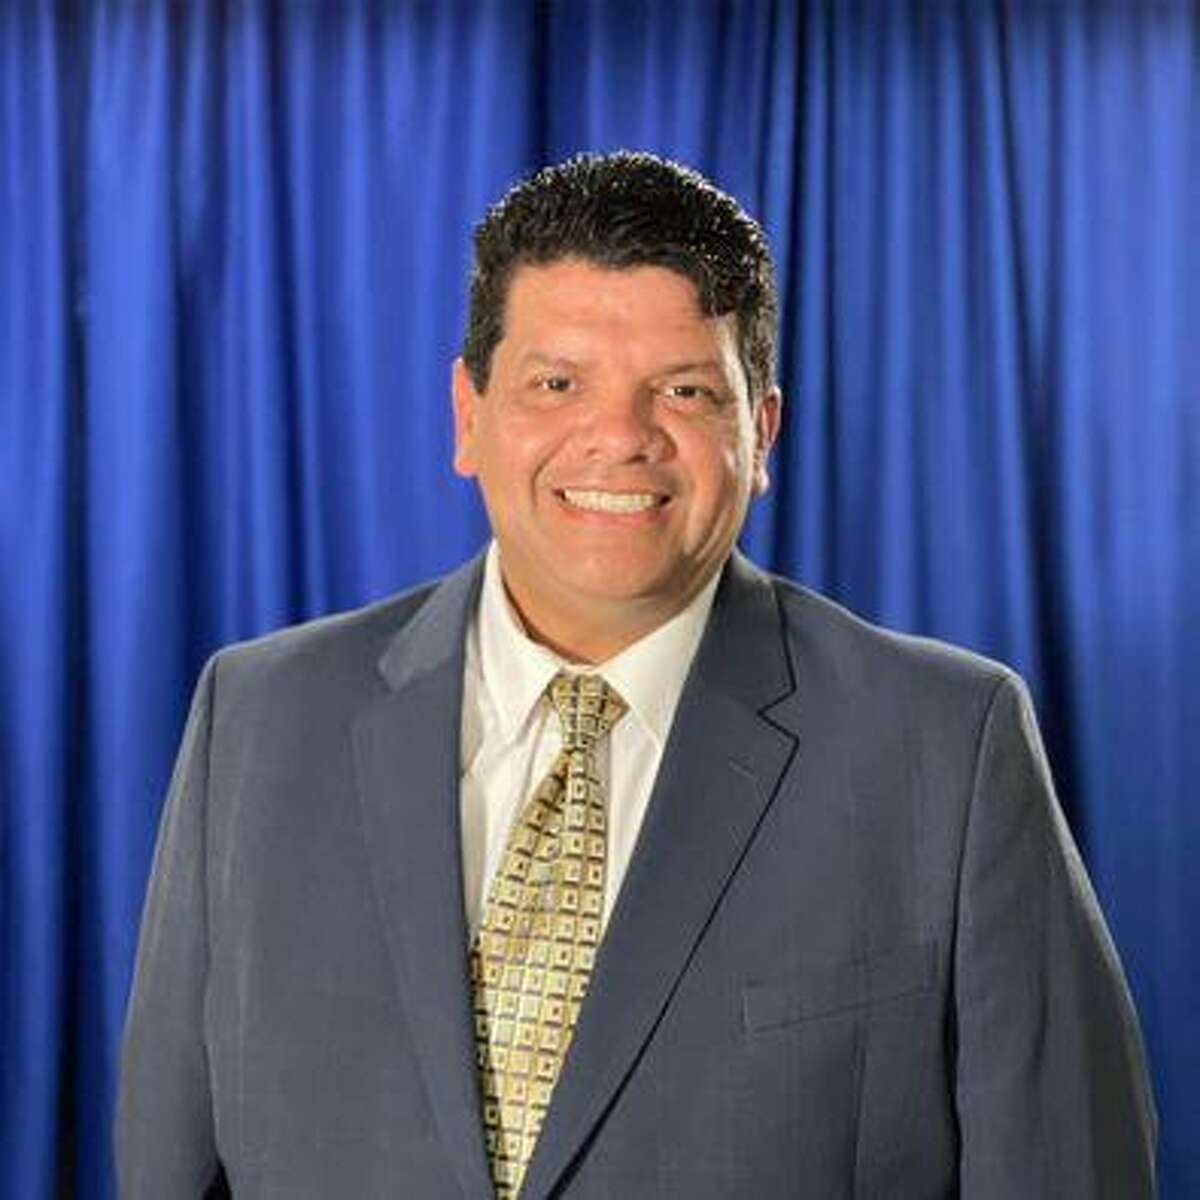 Rudy Lopez, a former civilian employee in the San Antonio Police Department, is in a City Council runoff for San Antonio's District 5. He faces Teri Castillo, an educator and member of the Historic Westside Residents Association.